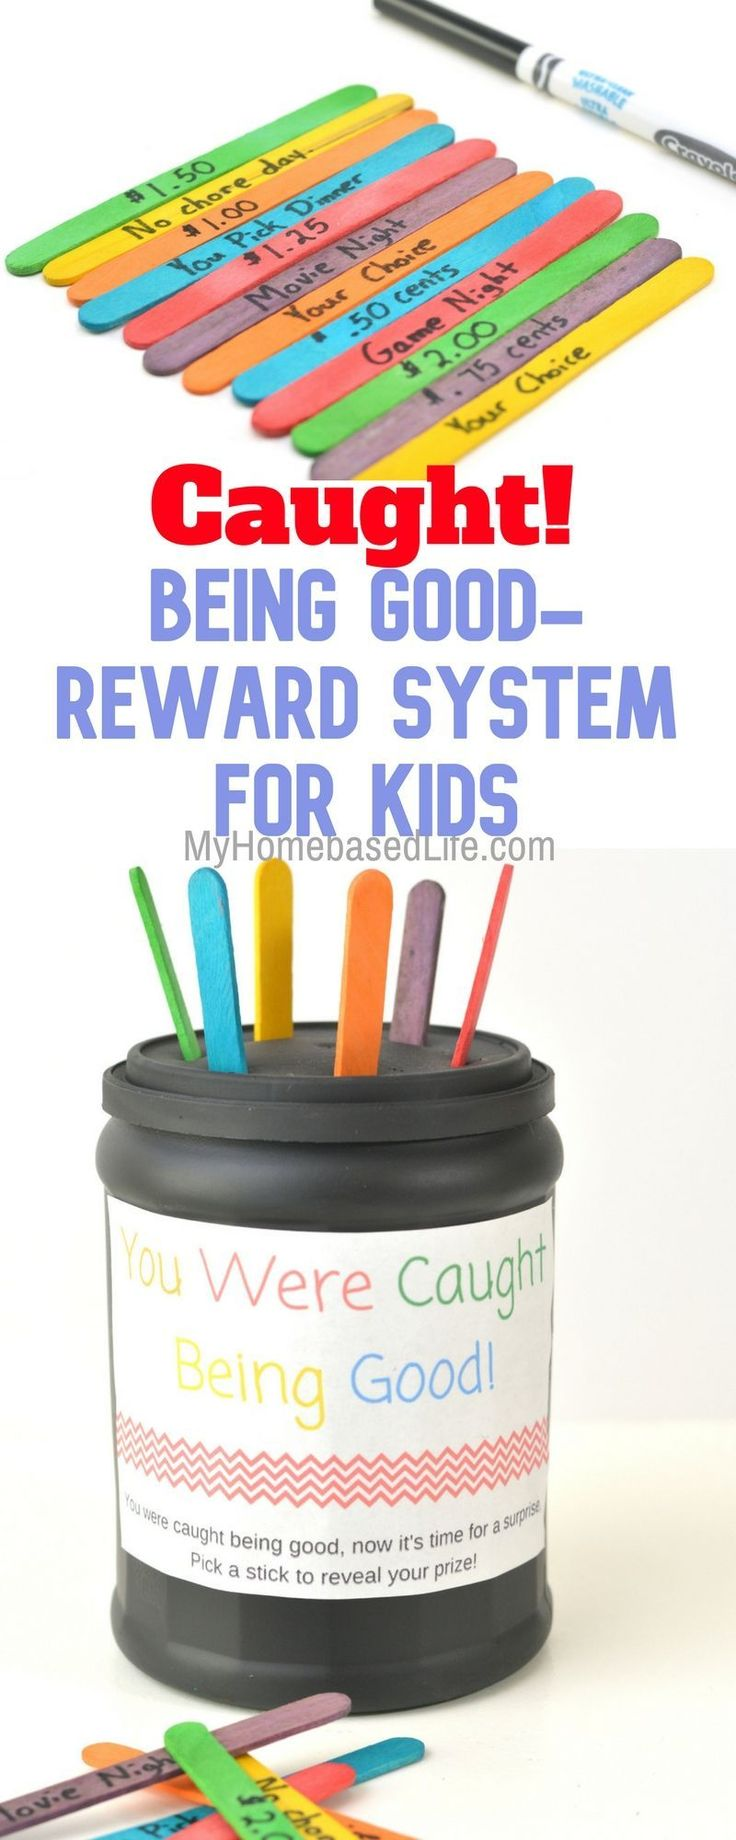 Reward your kiddos for going above and beyond your expectations. This reward system is completely customizable for any child. | #rewardsystem #kids #parenting #excellence #kidscraft | Kids Crafts | Parenting Tip | Reward System for kids | Kids Chores | Mystery Prizes via @myhomebasedlife